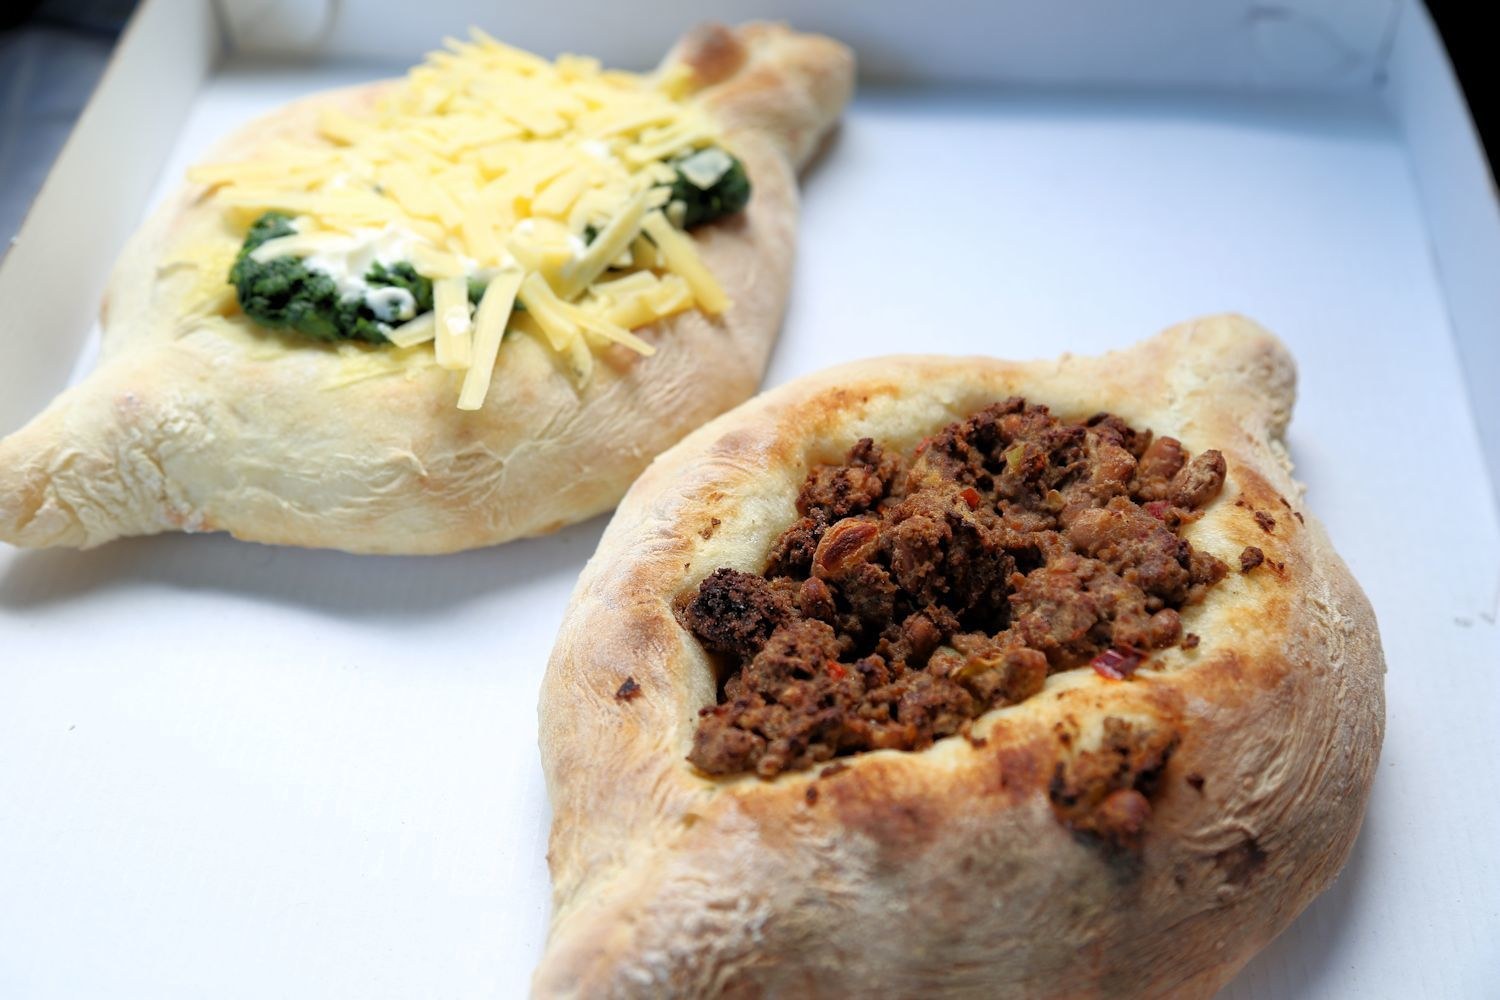 Adjarian Khachapuri with spinach and meat with peas